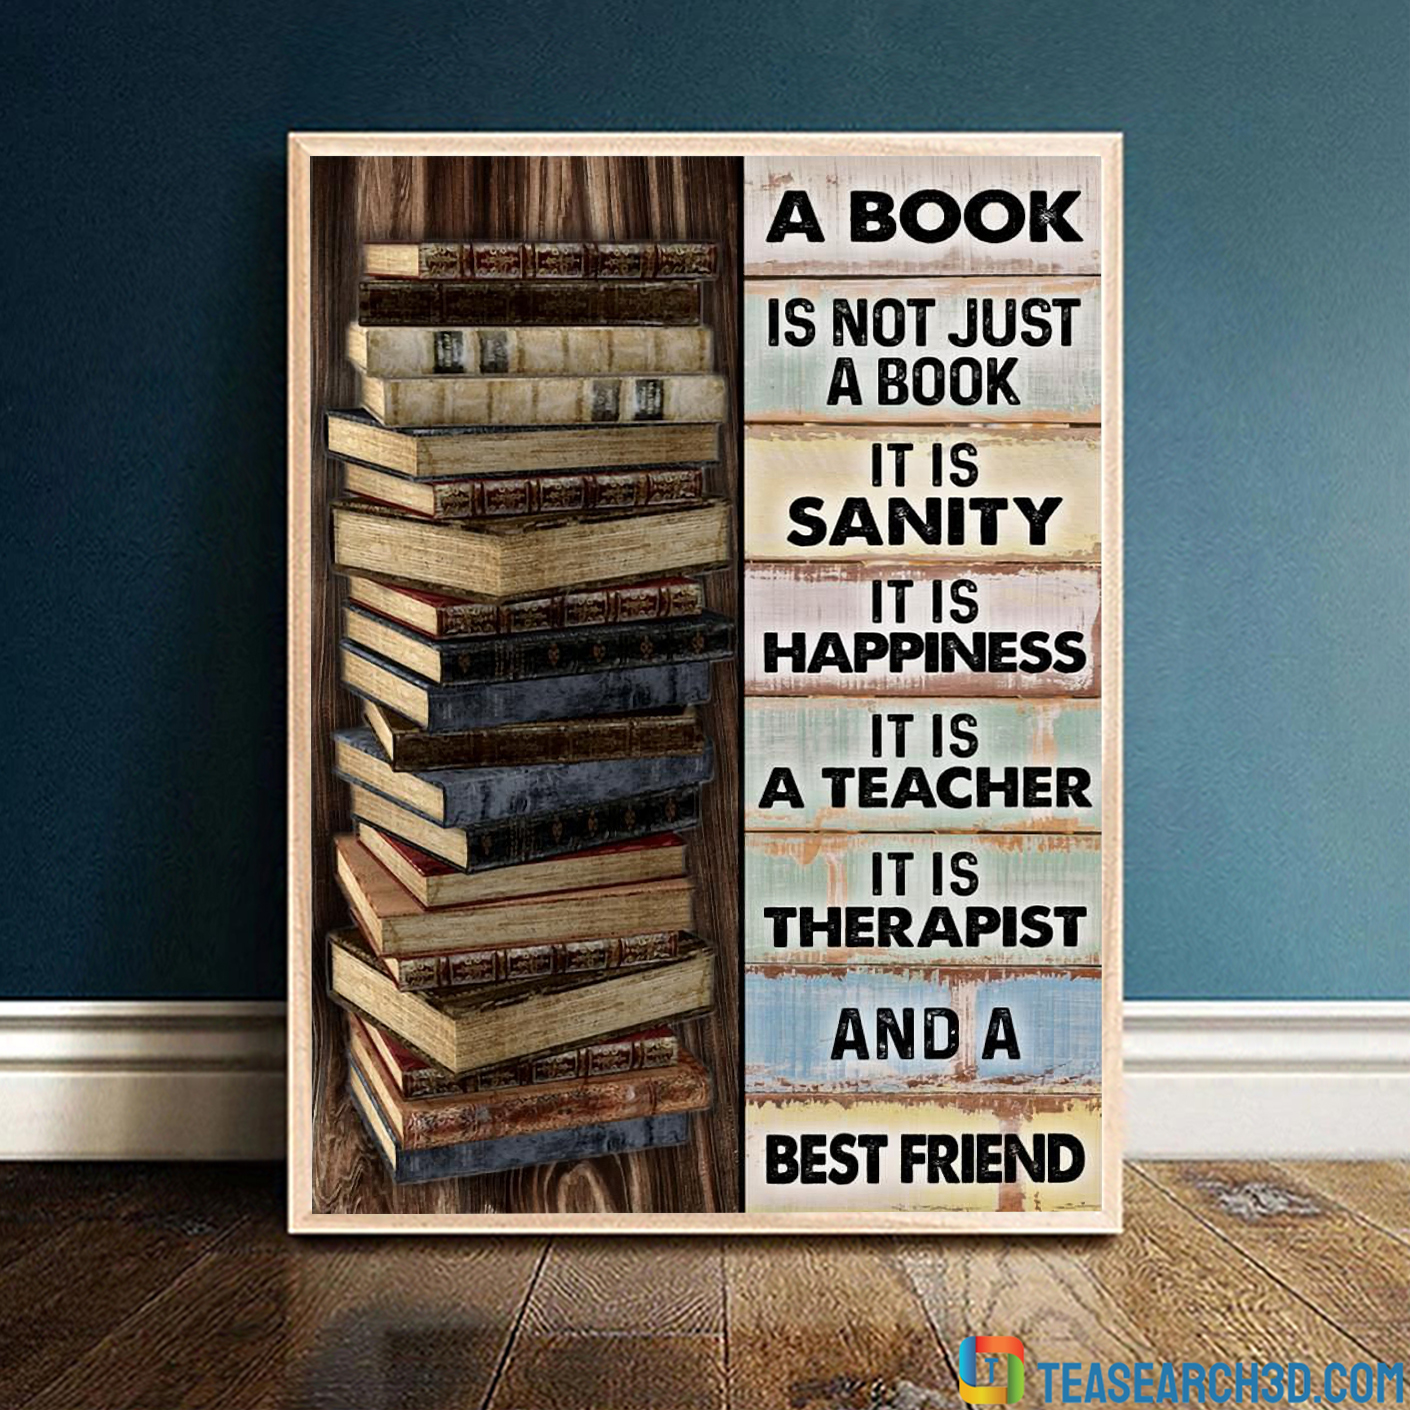 A book is not just a book it is sanity poster